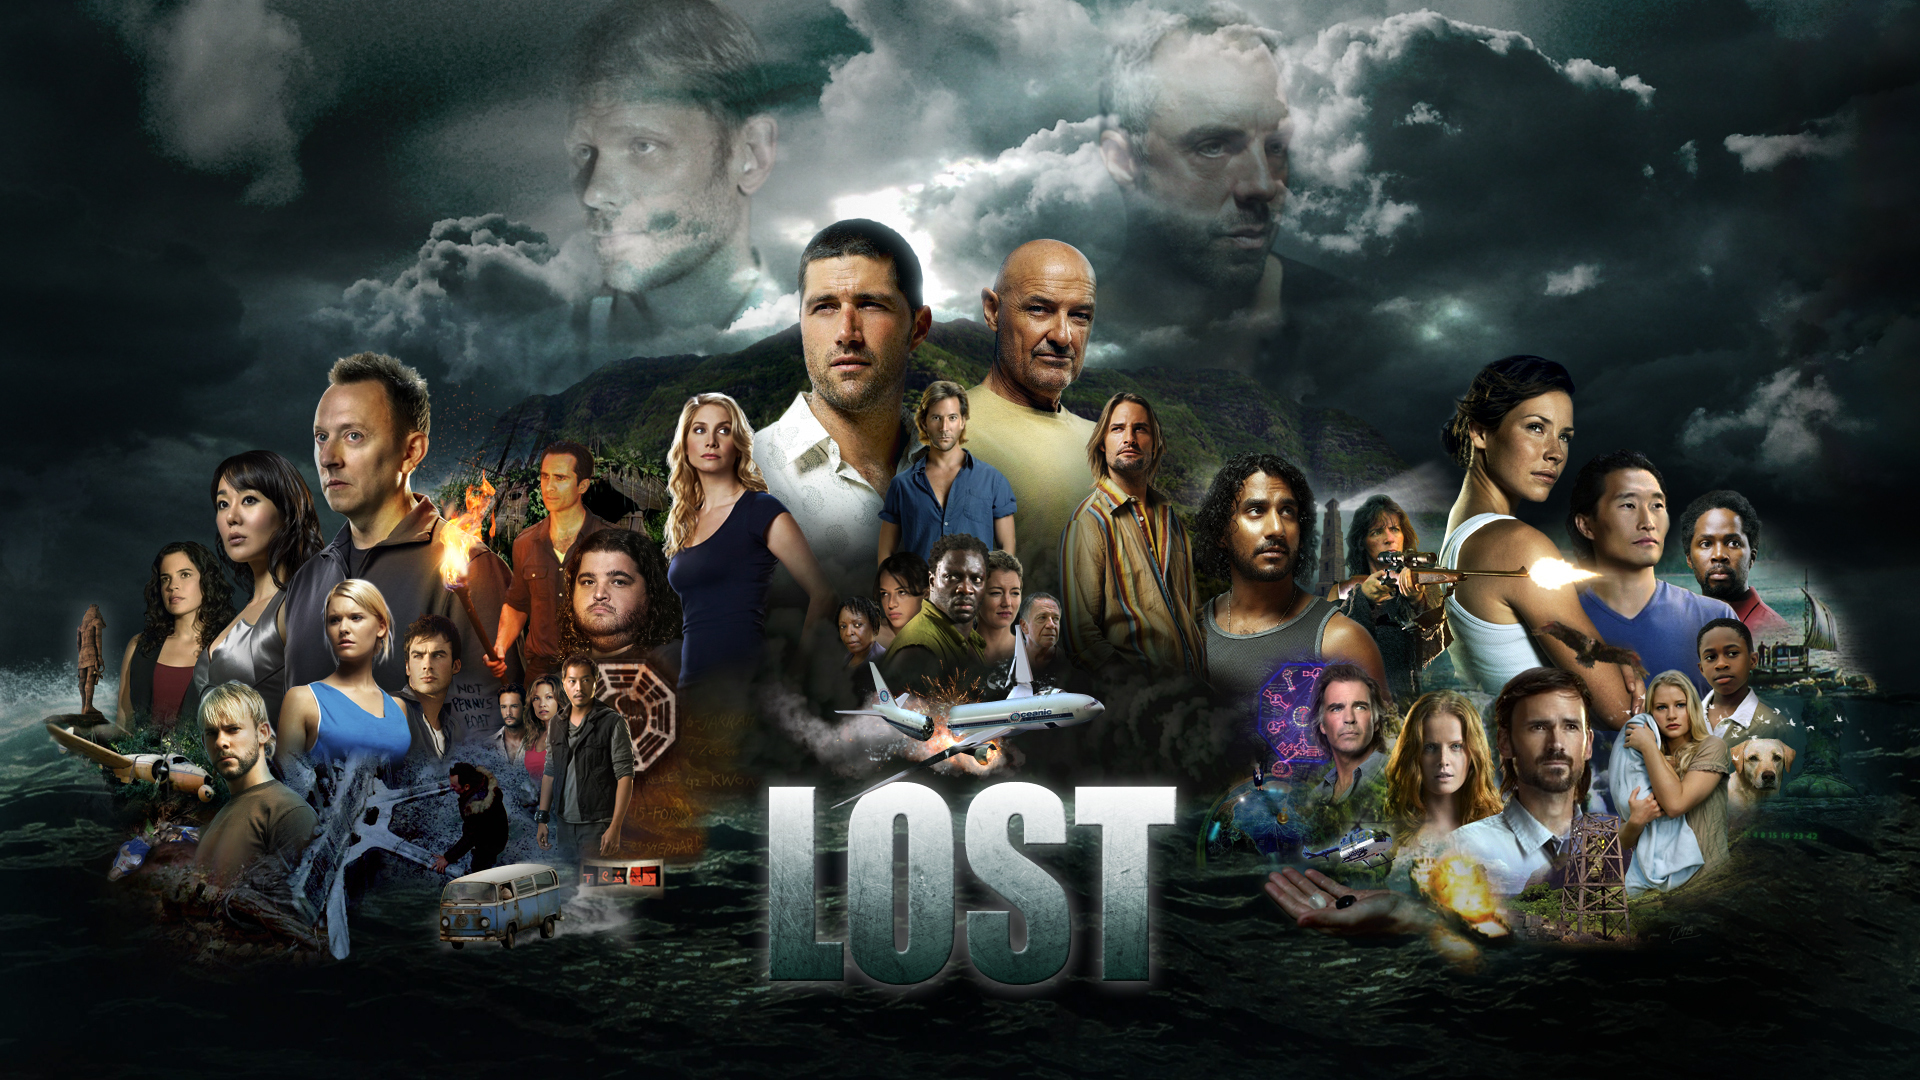 Lost - Lost Wallpaper ...